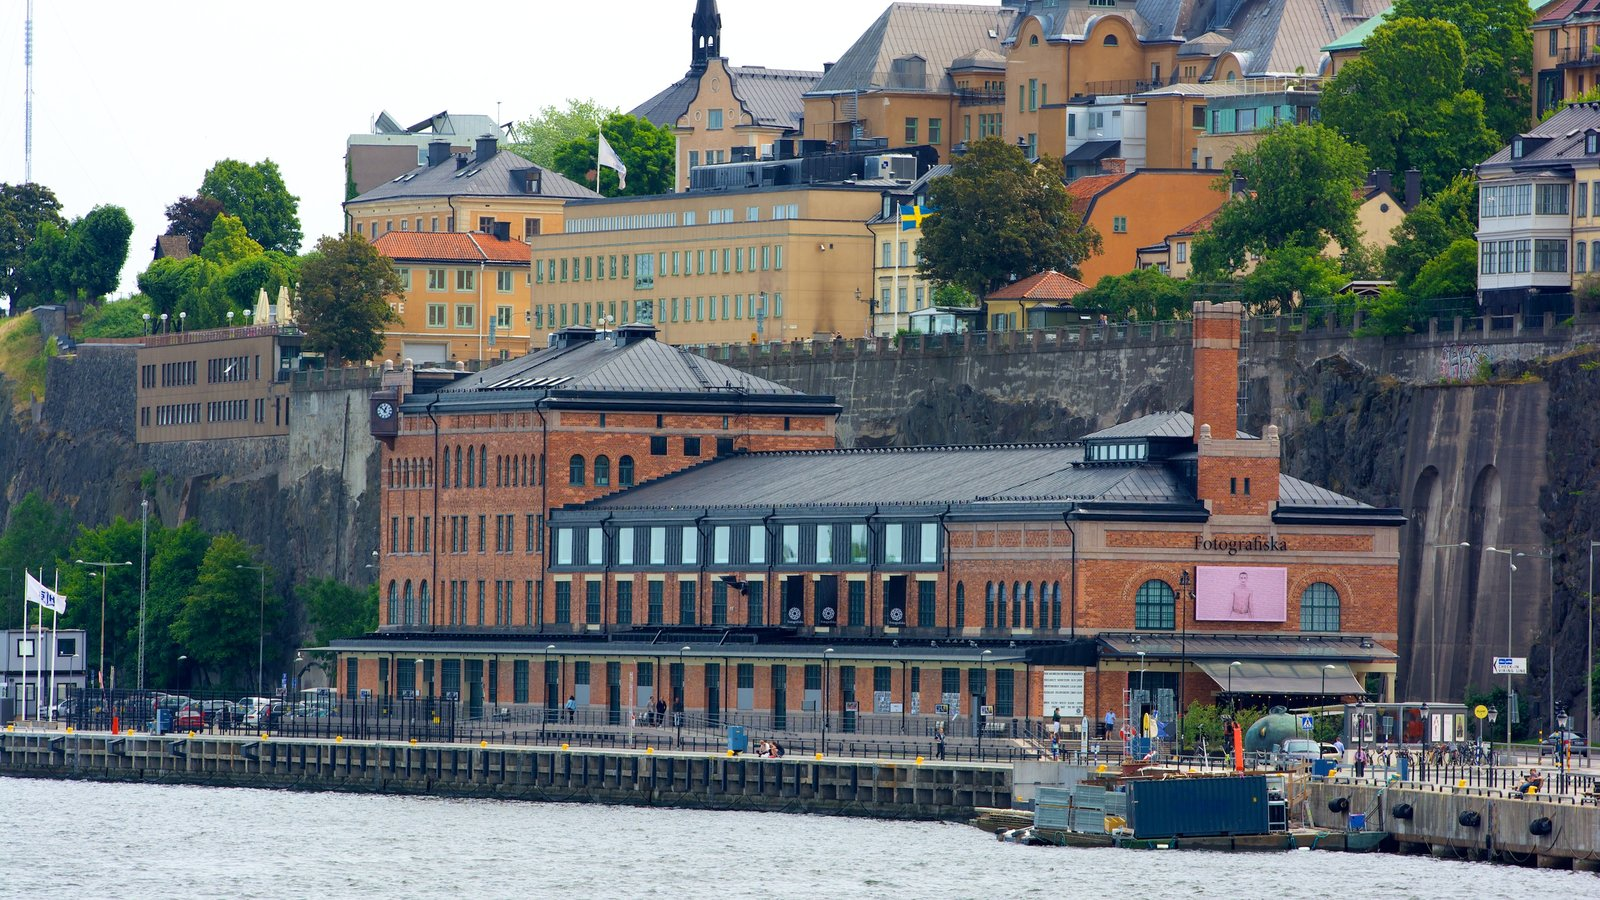 Fotografiska showing a coastal town and heritage architecture